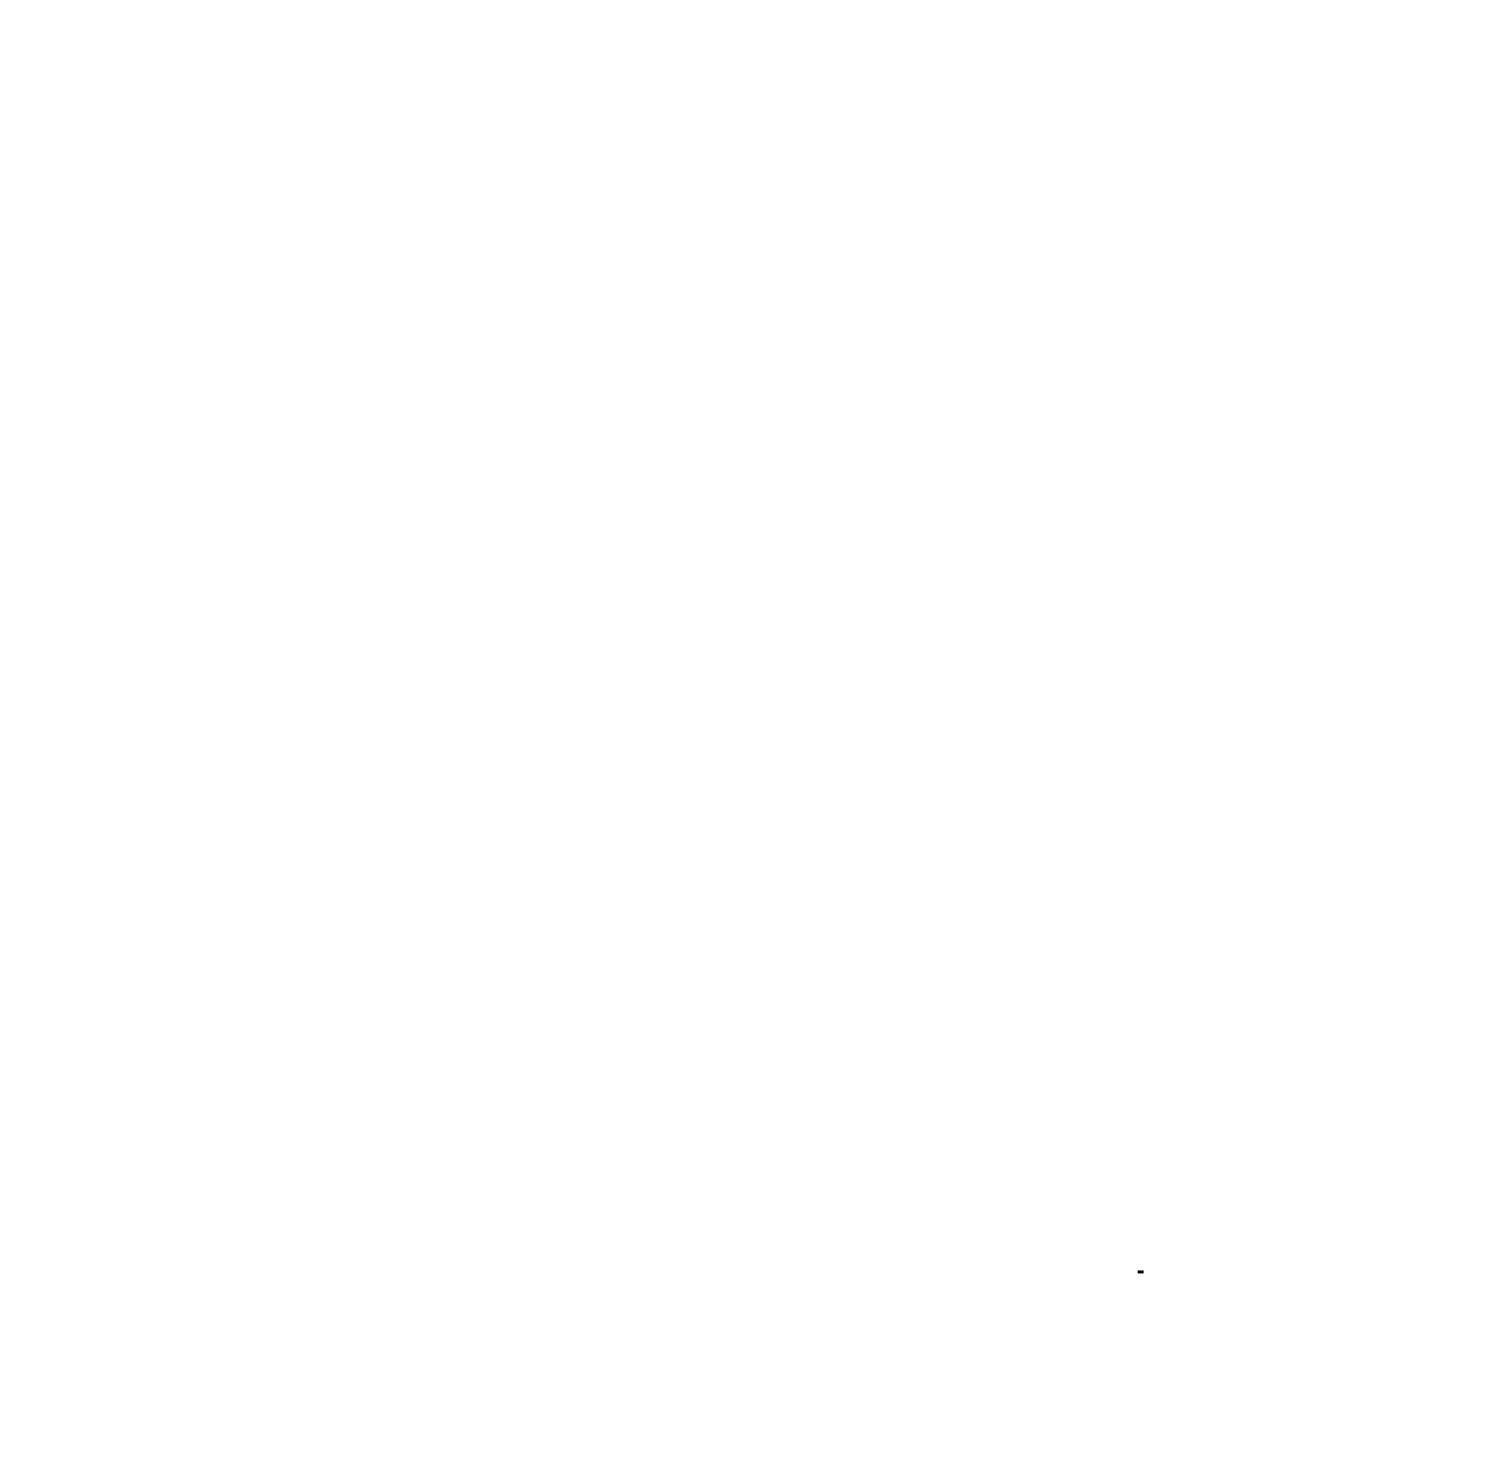 Midwestern Electric, Inc.